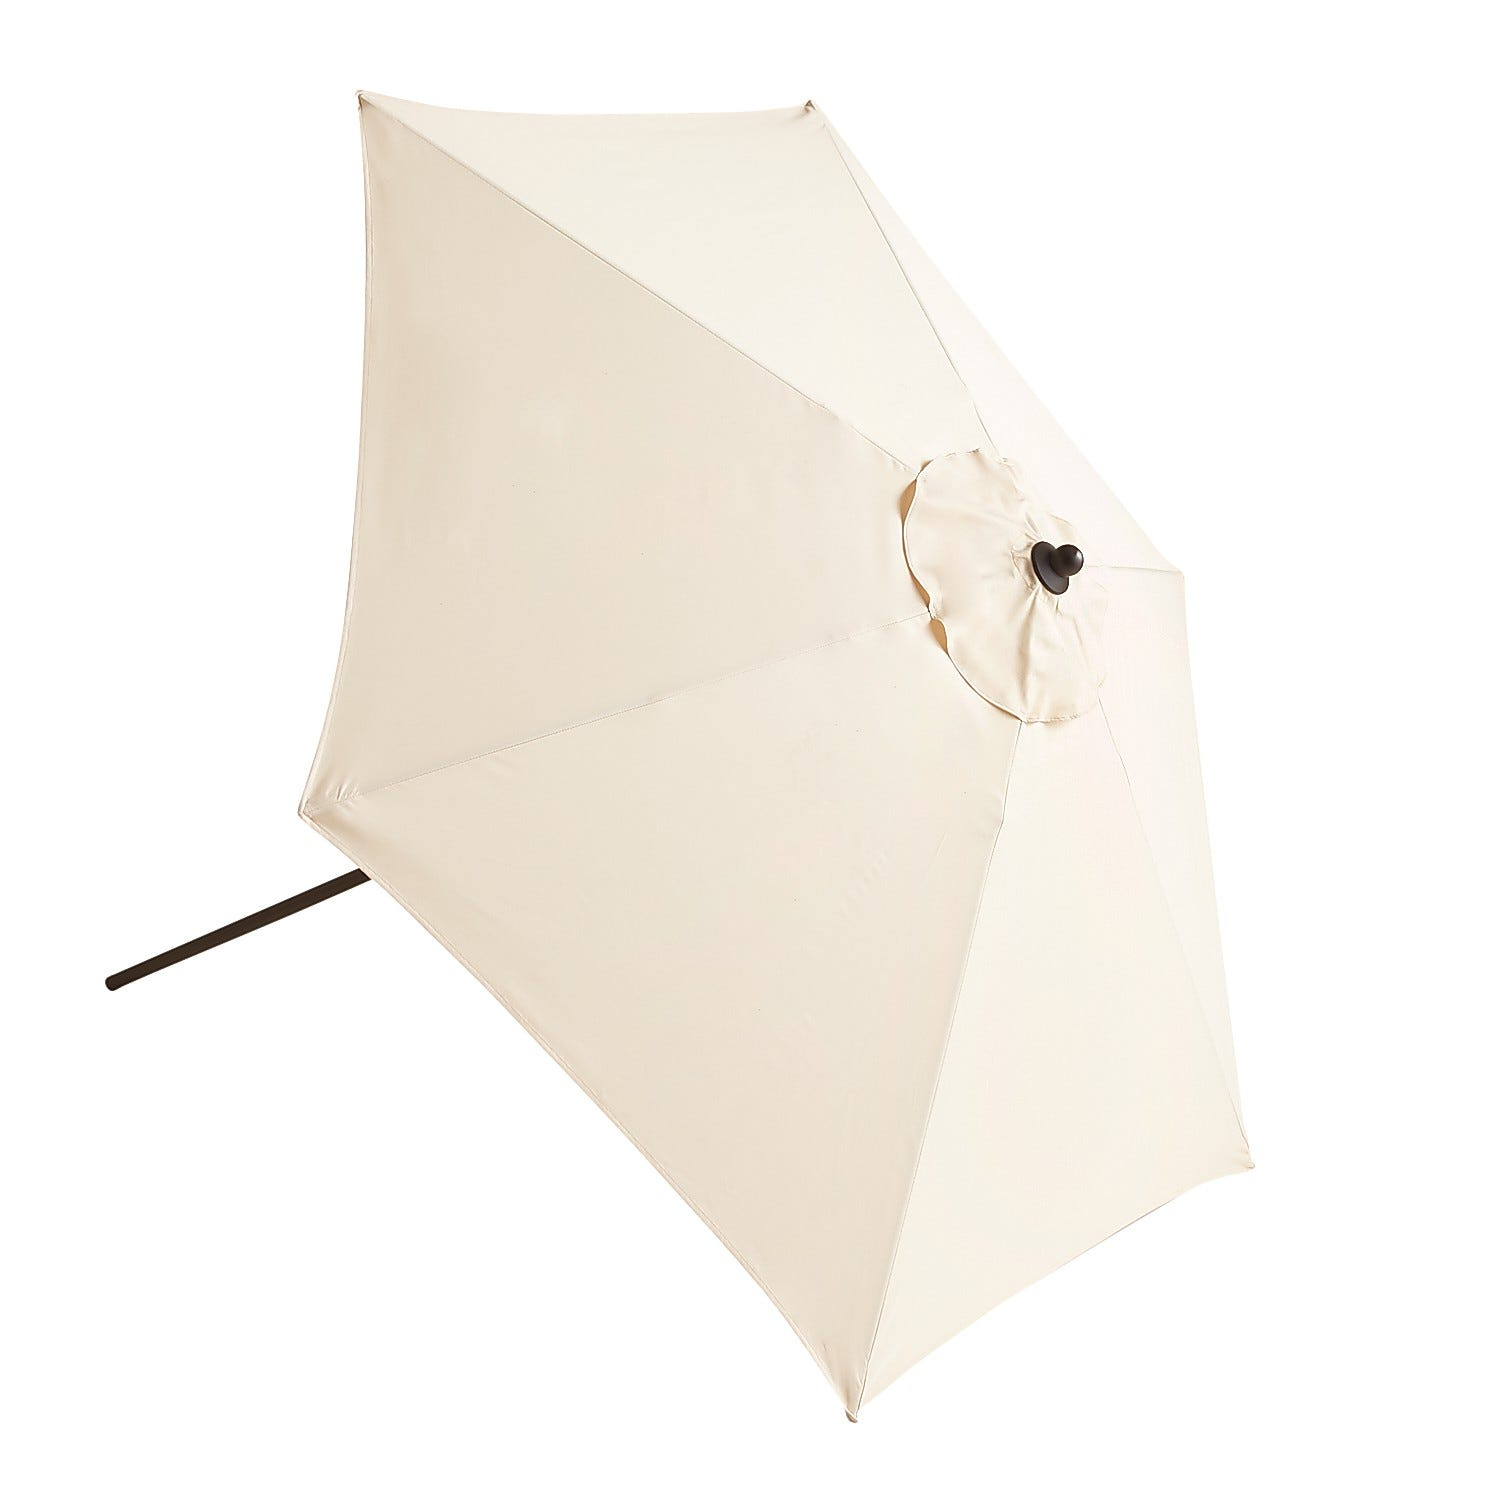 Pier 1 Stores: 7' Outdoor Umbrella (Sand or Natural Stripe)